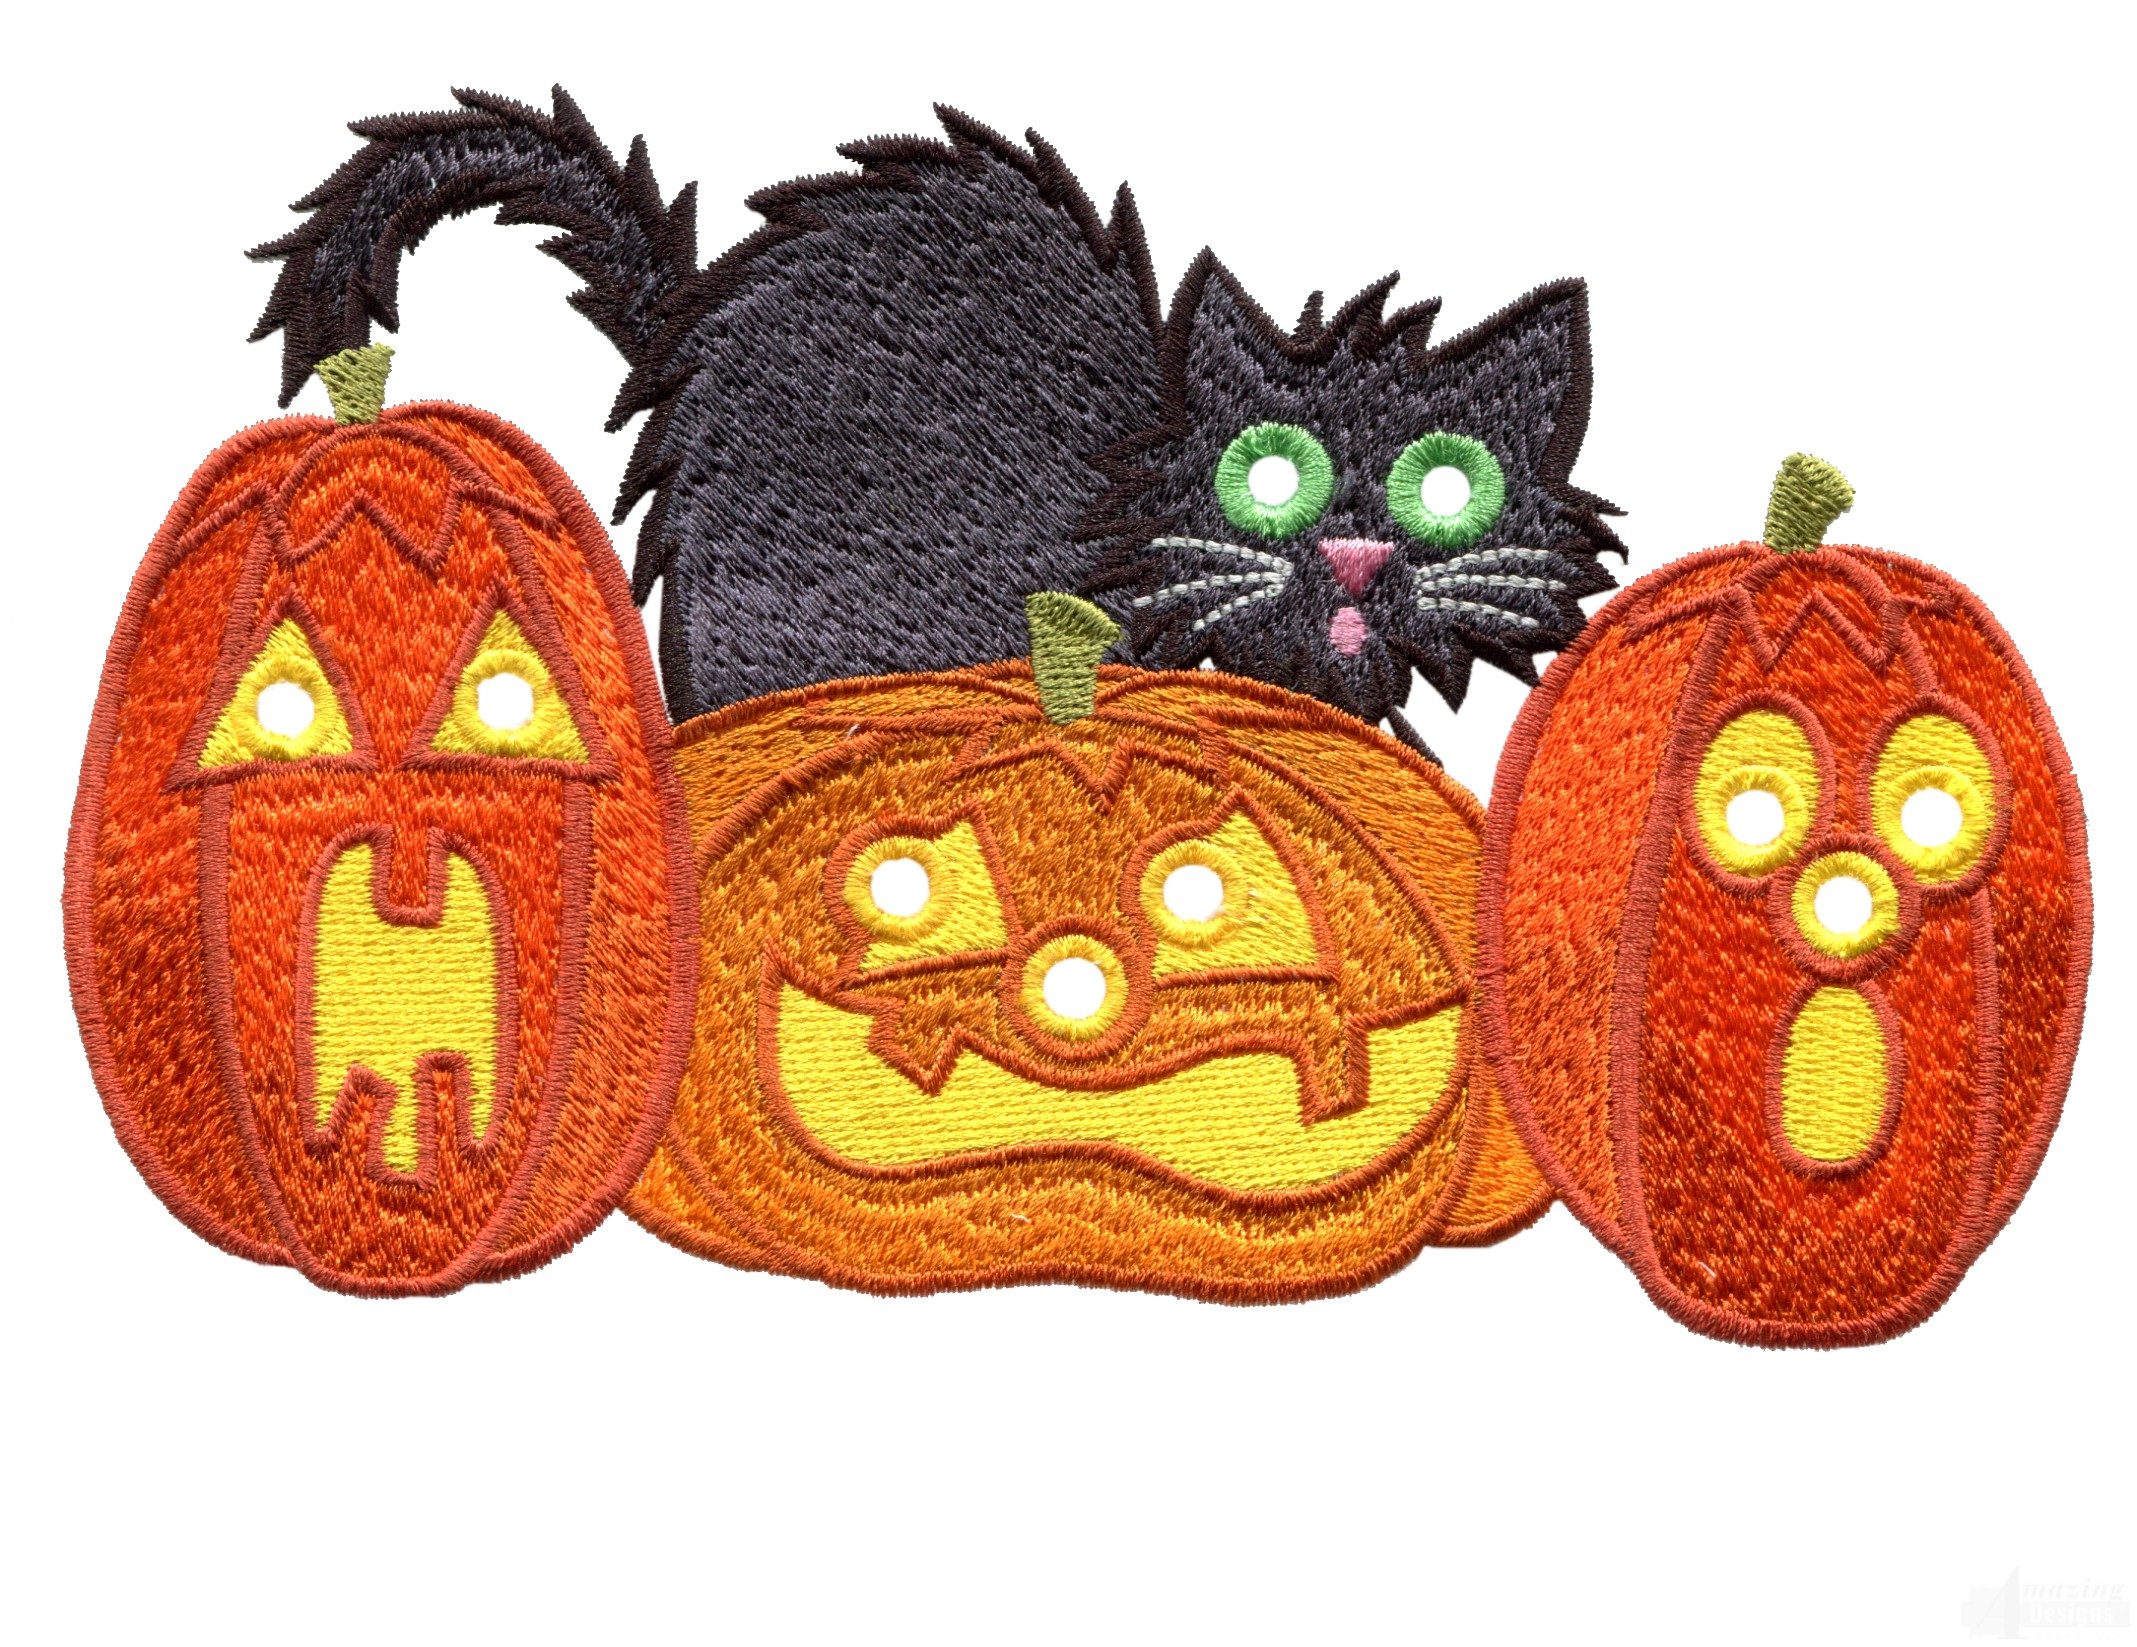 Pumpkins and cat embroidery design for Pumpkin kitty designs